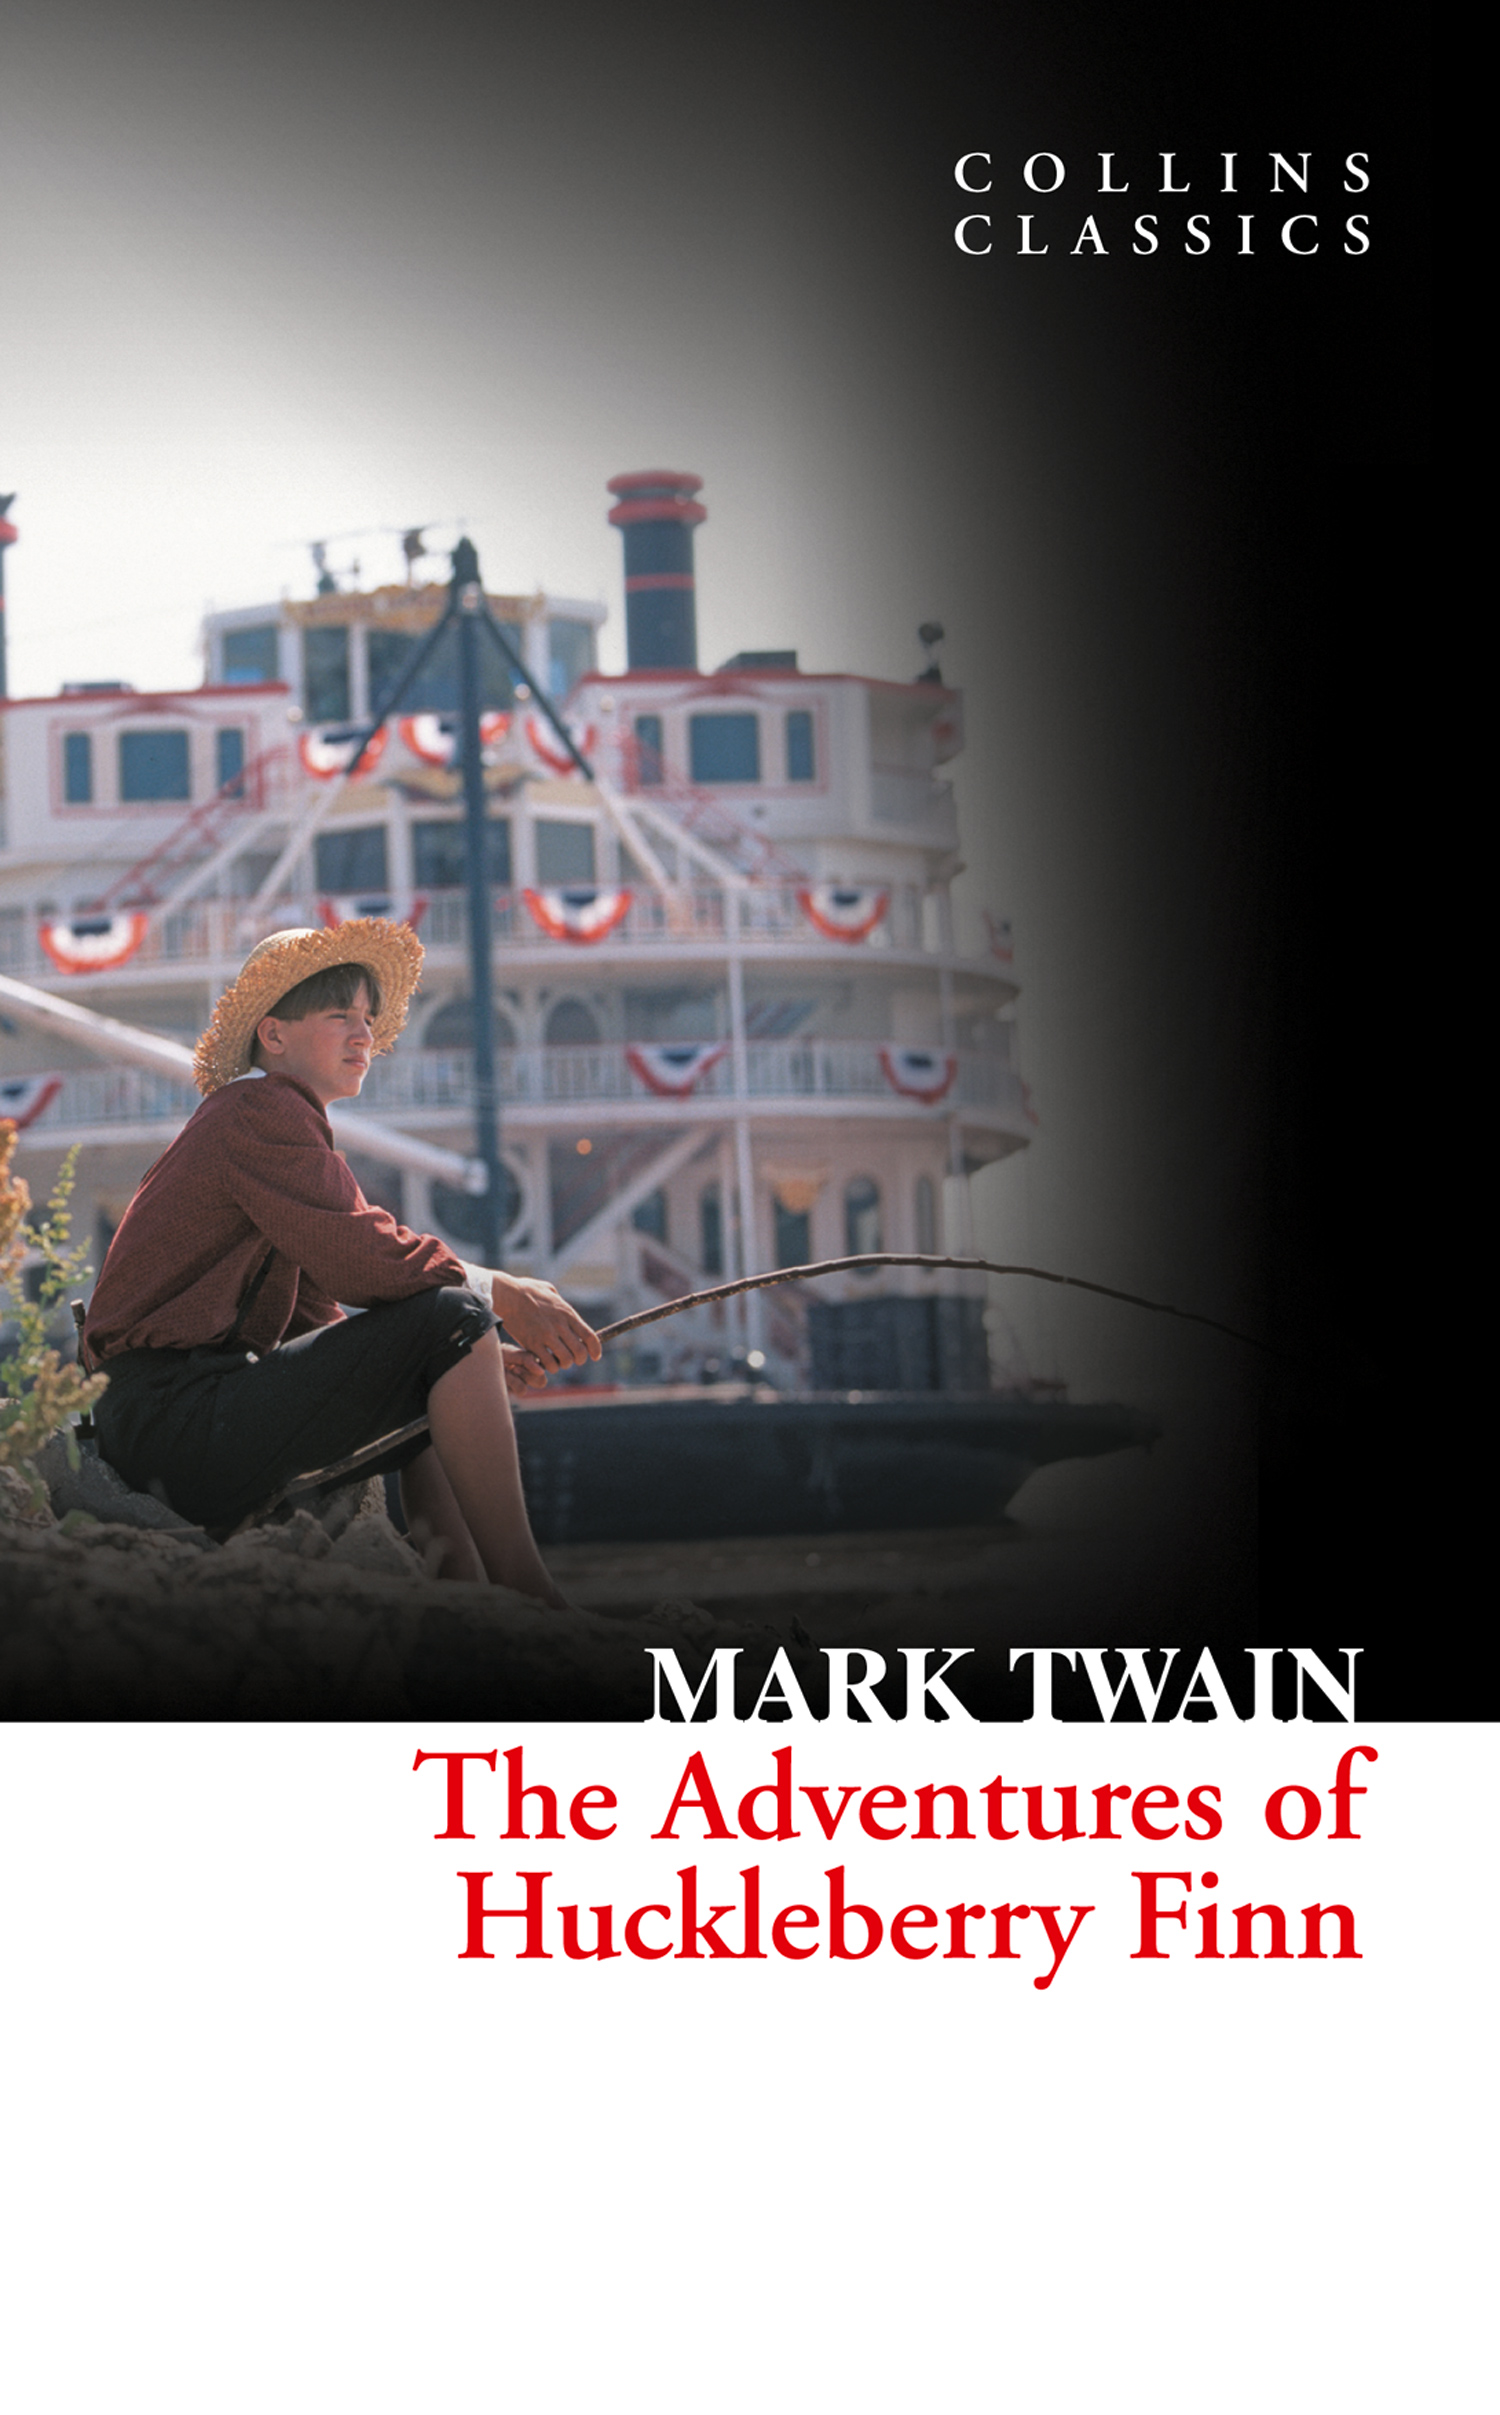 an analysis of the harsh realities in the novel the adventures of huckleberry finn by mark twain Adventures of huckleberry finn (or, in more recent editions, the adventures of huckleberry finn) is a novel by mark twain, first published in england in.